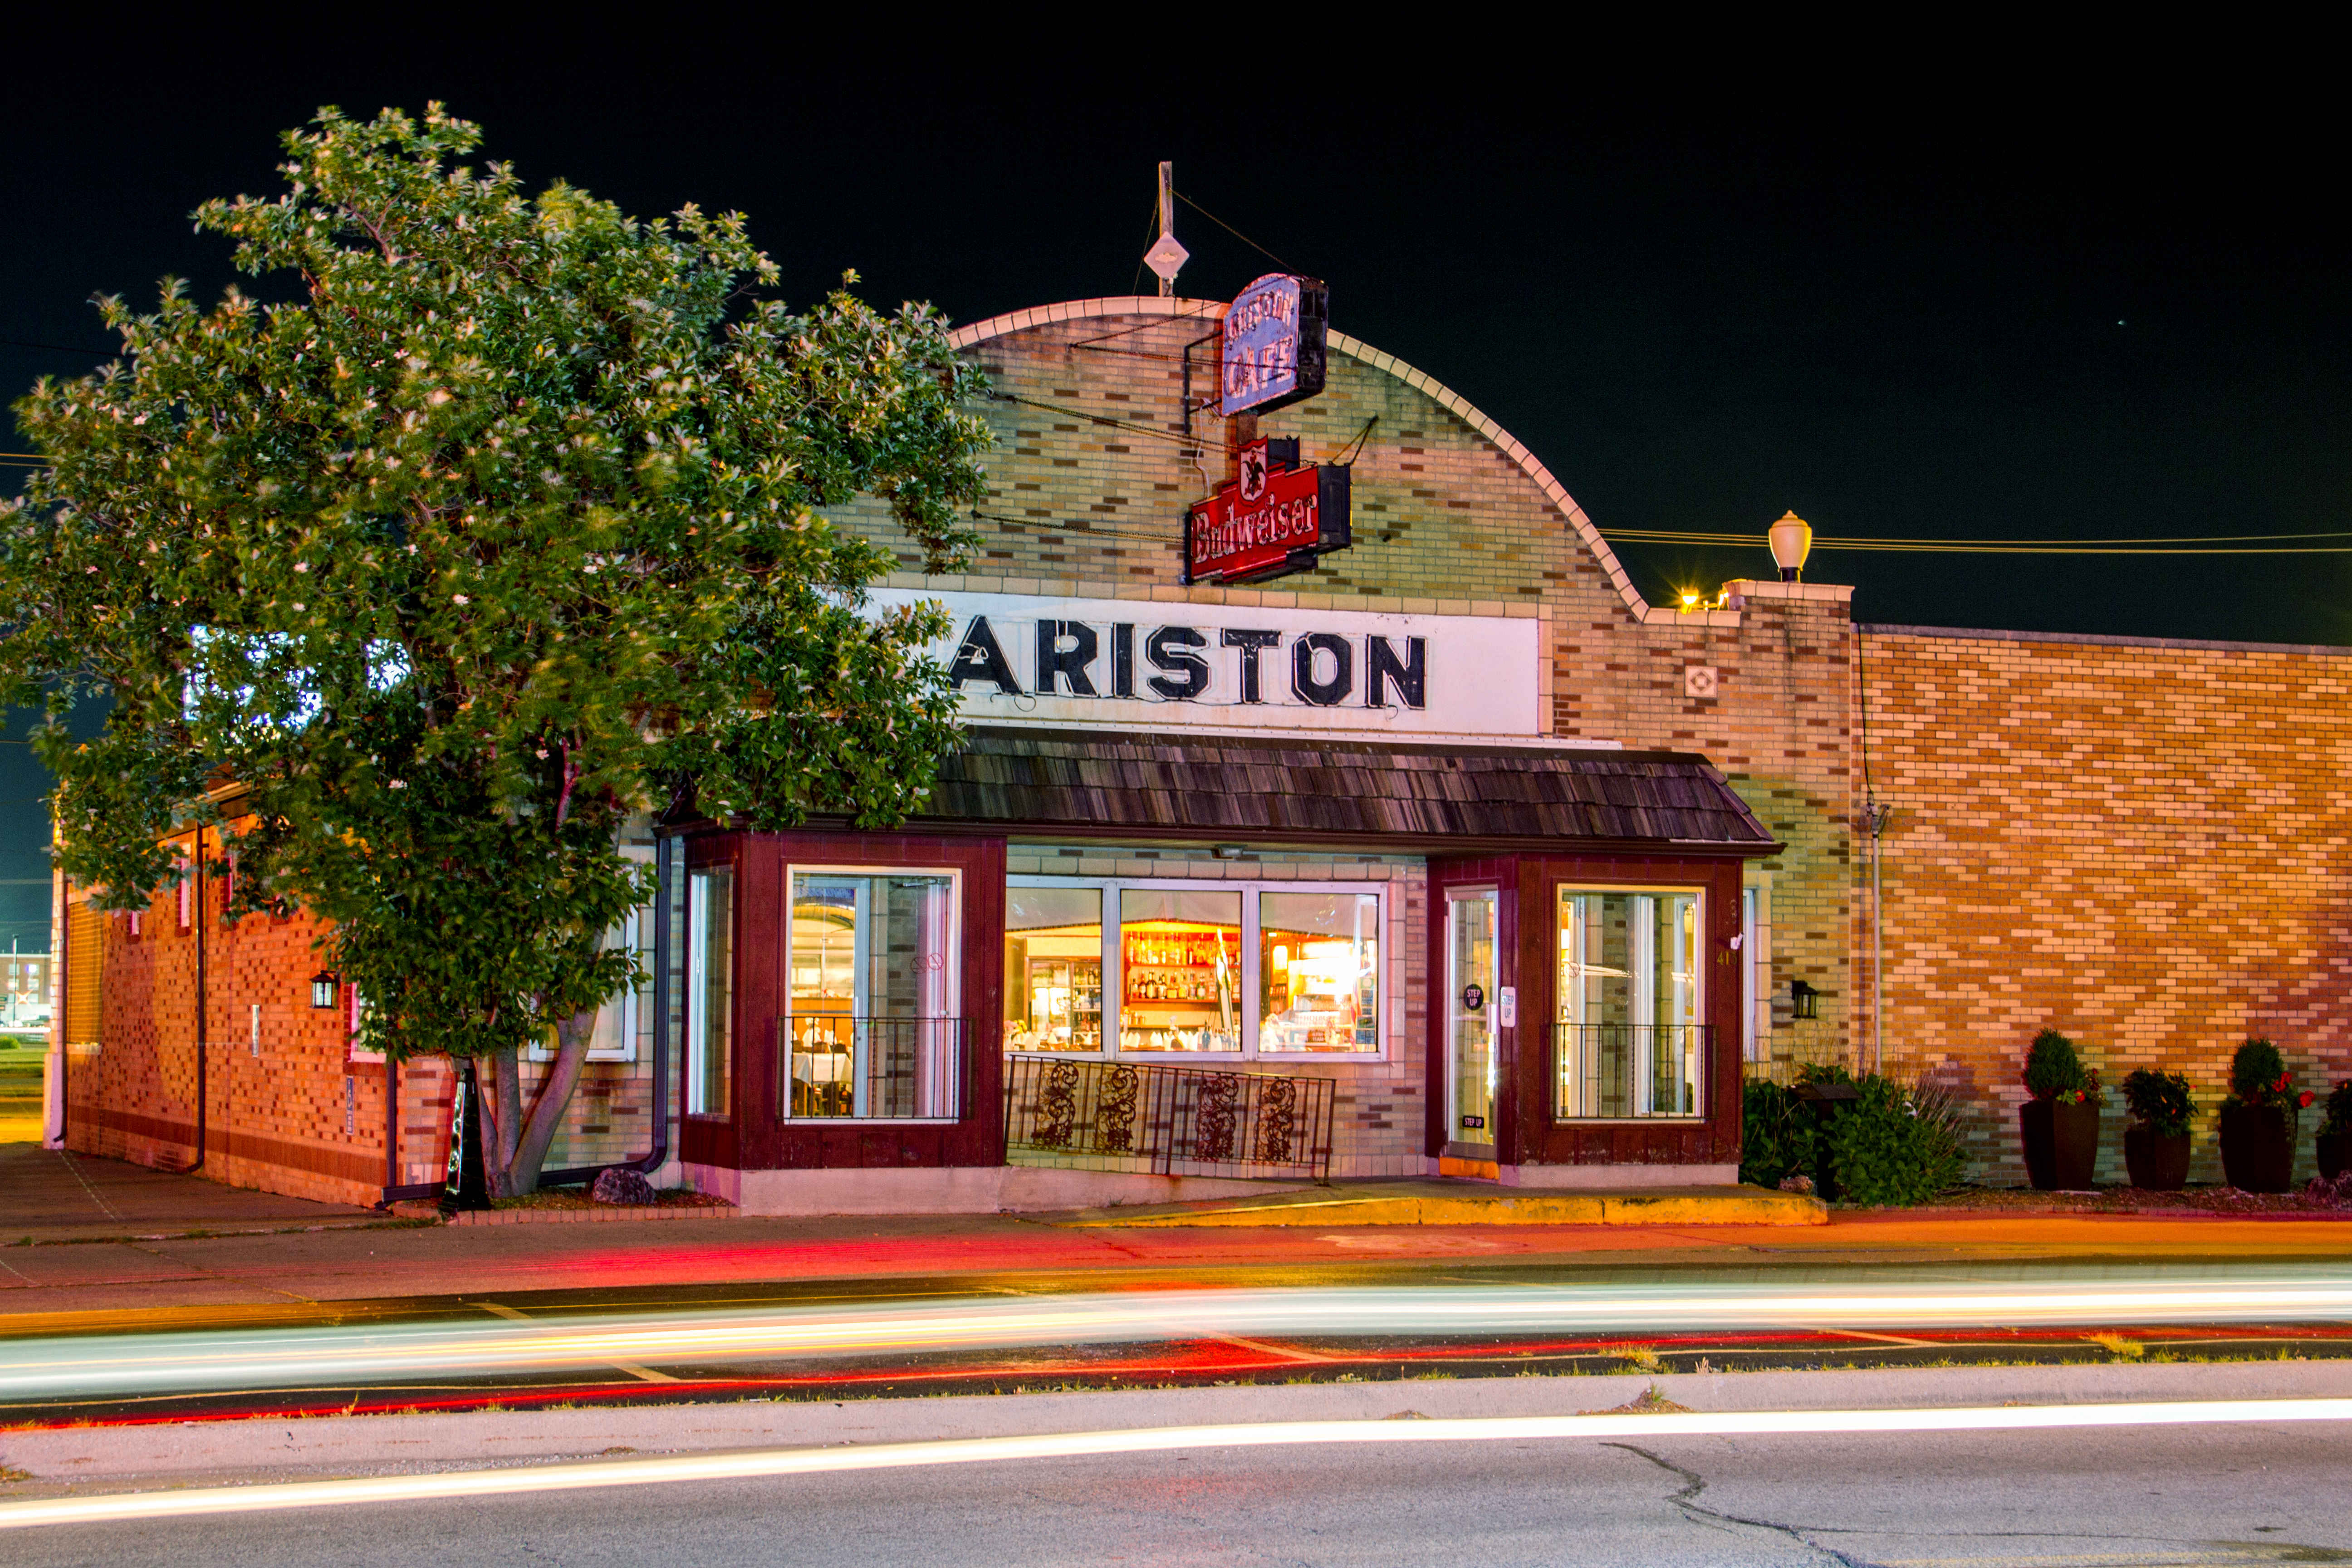 Eating dinner at the Ariston Cafe is one of the top 10 things to do in Litchfield.